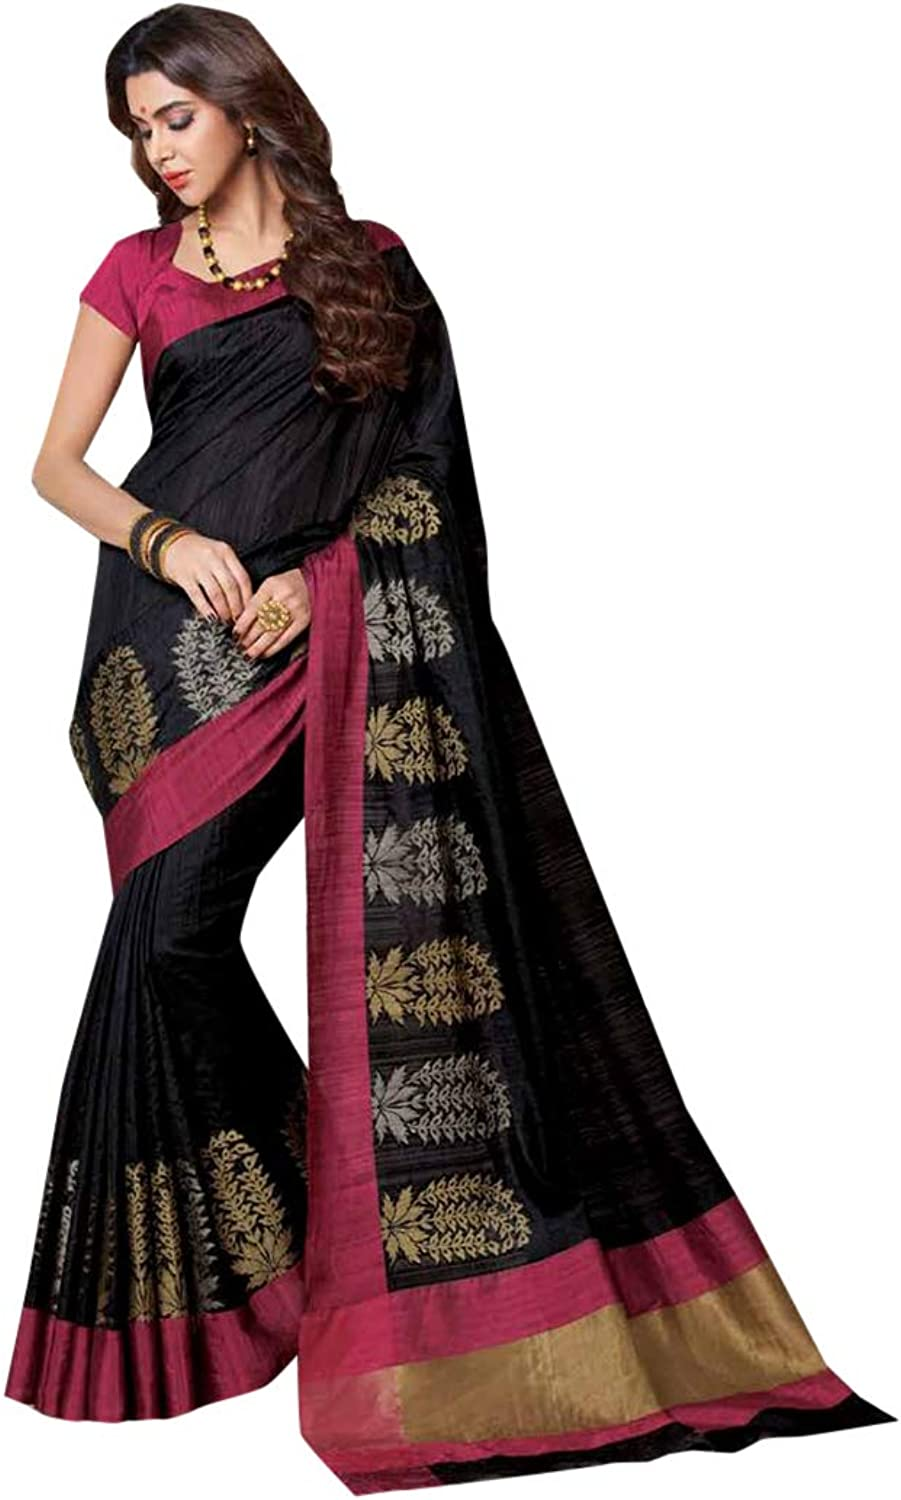 Indian Ethnic Black Silk Saree And Blouse Designer Collection Women Stylish Party Formal Wear 7285